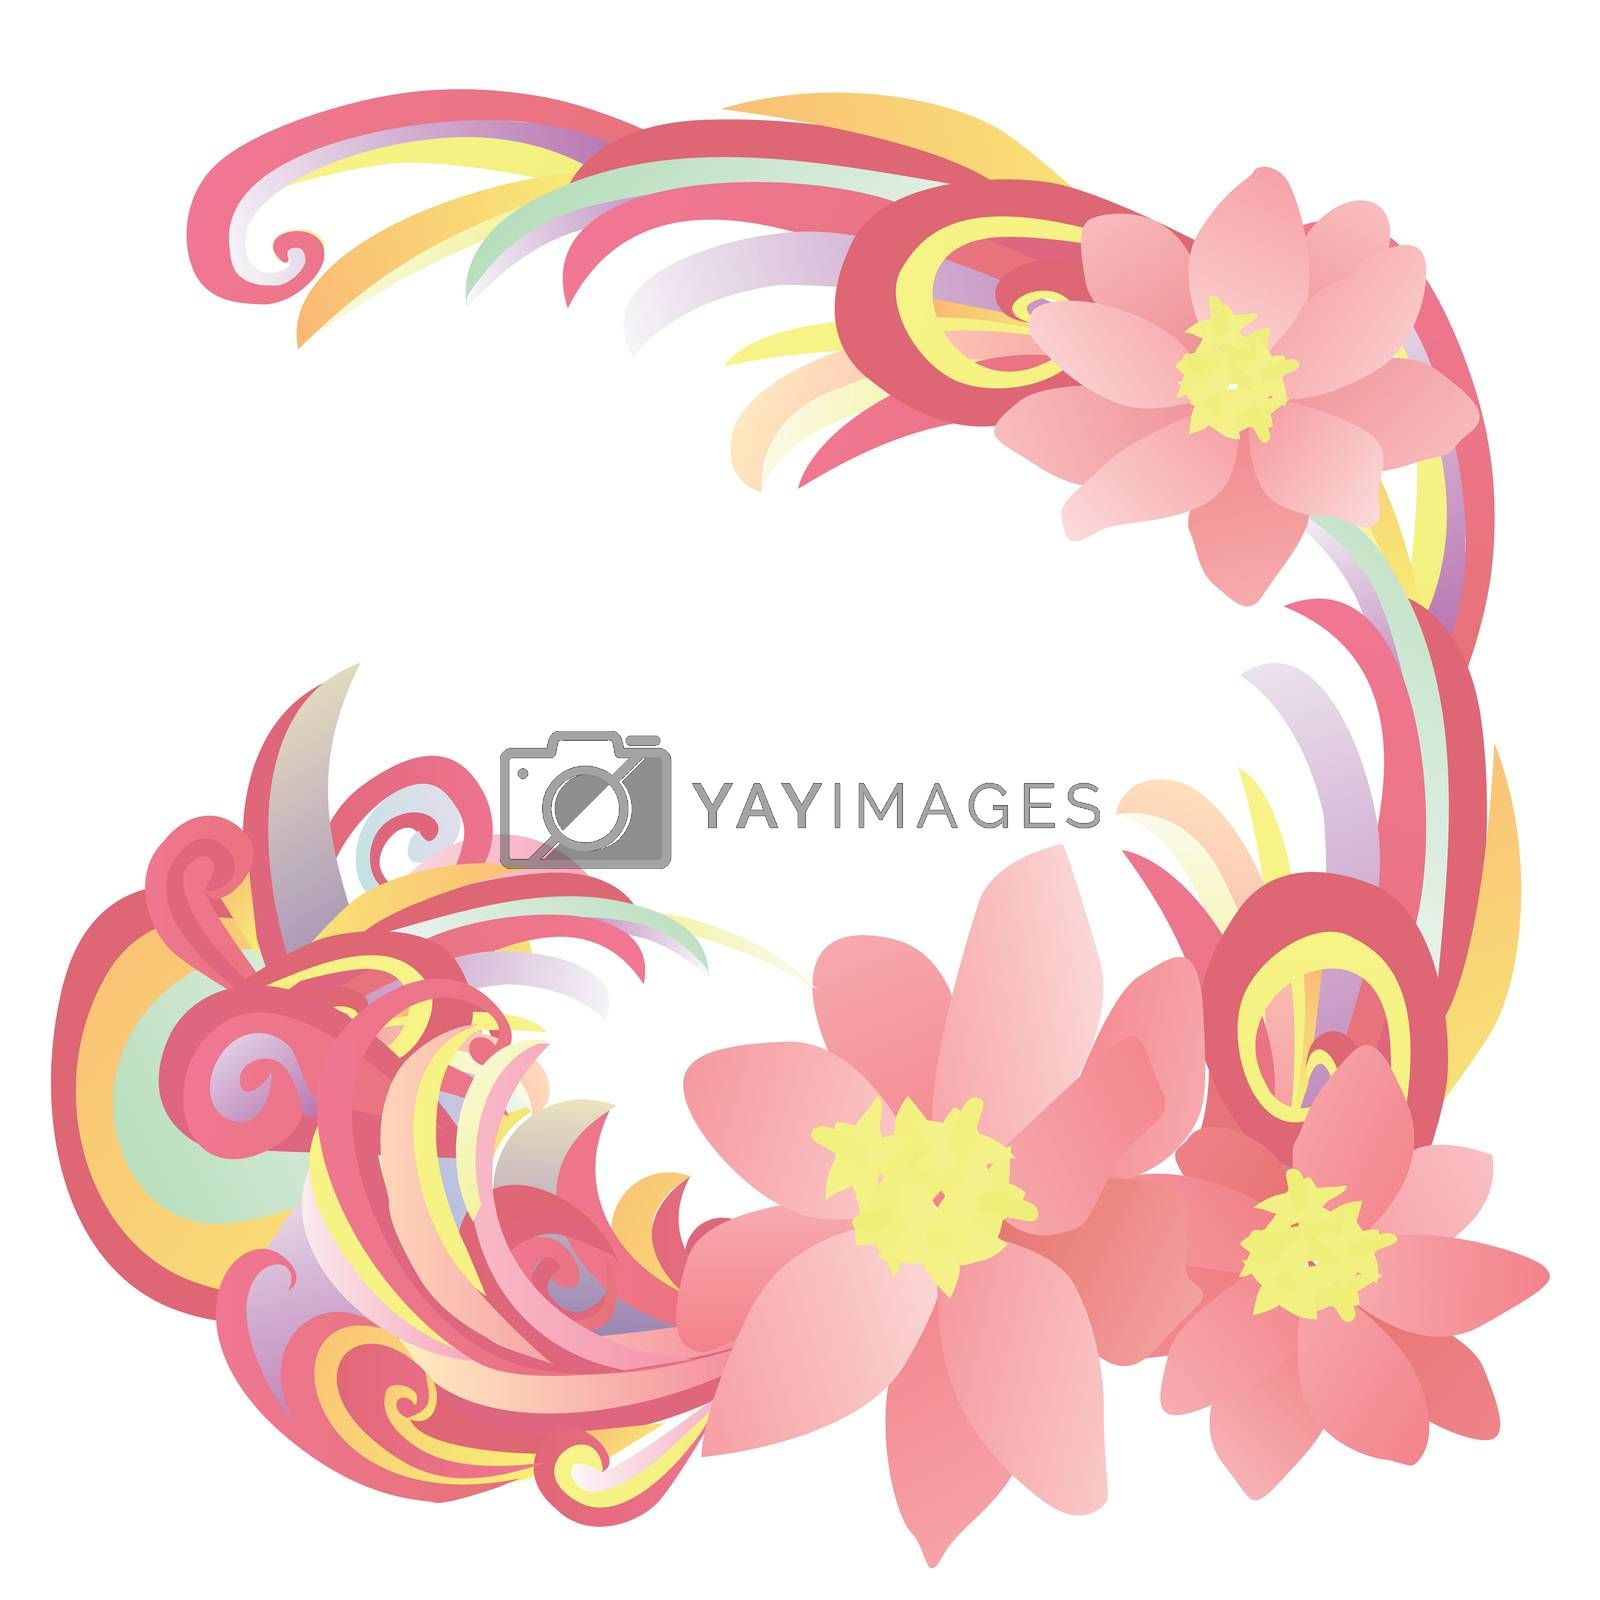 """abstract flowers pink, red and yellow illust<span id=""""transmark""""></span>ration by CherJu"""